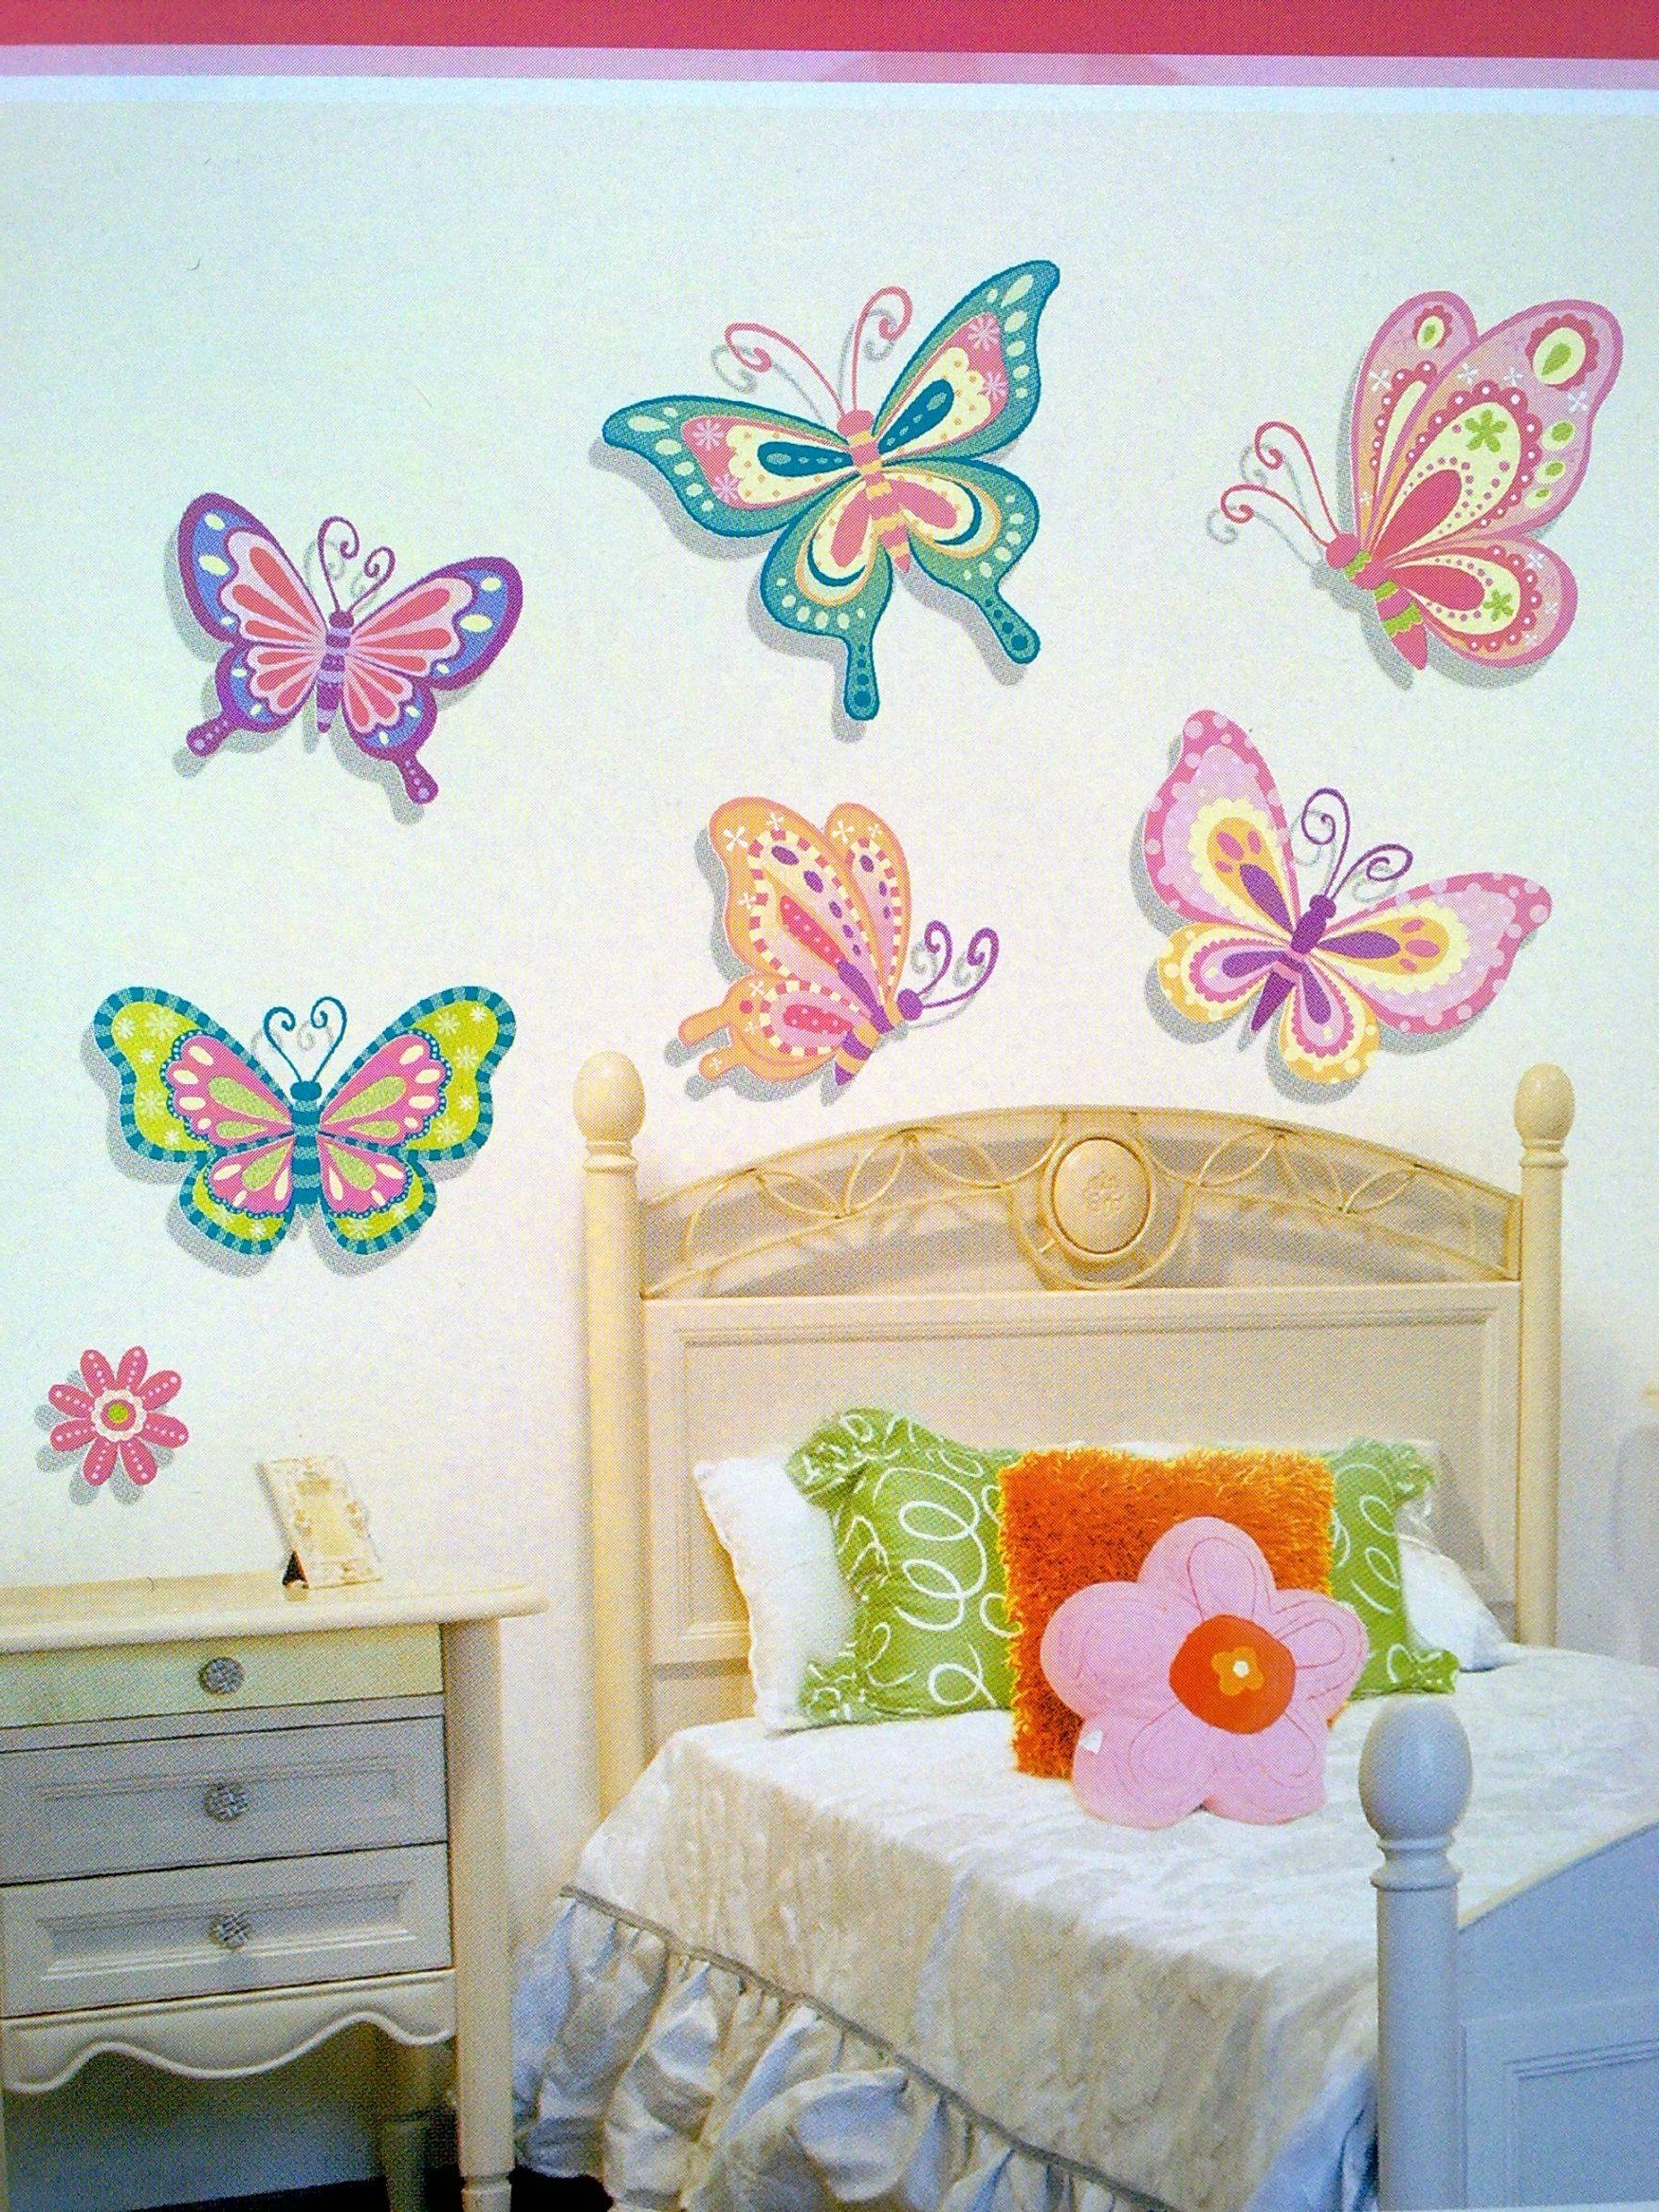 2017 Wall Decor : Full Wall Decals Butterfly Wall Stickers Wall Art Pertaining To Fabric Wall Art Stickers (View 1 of 15)